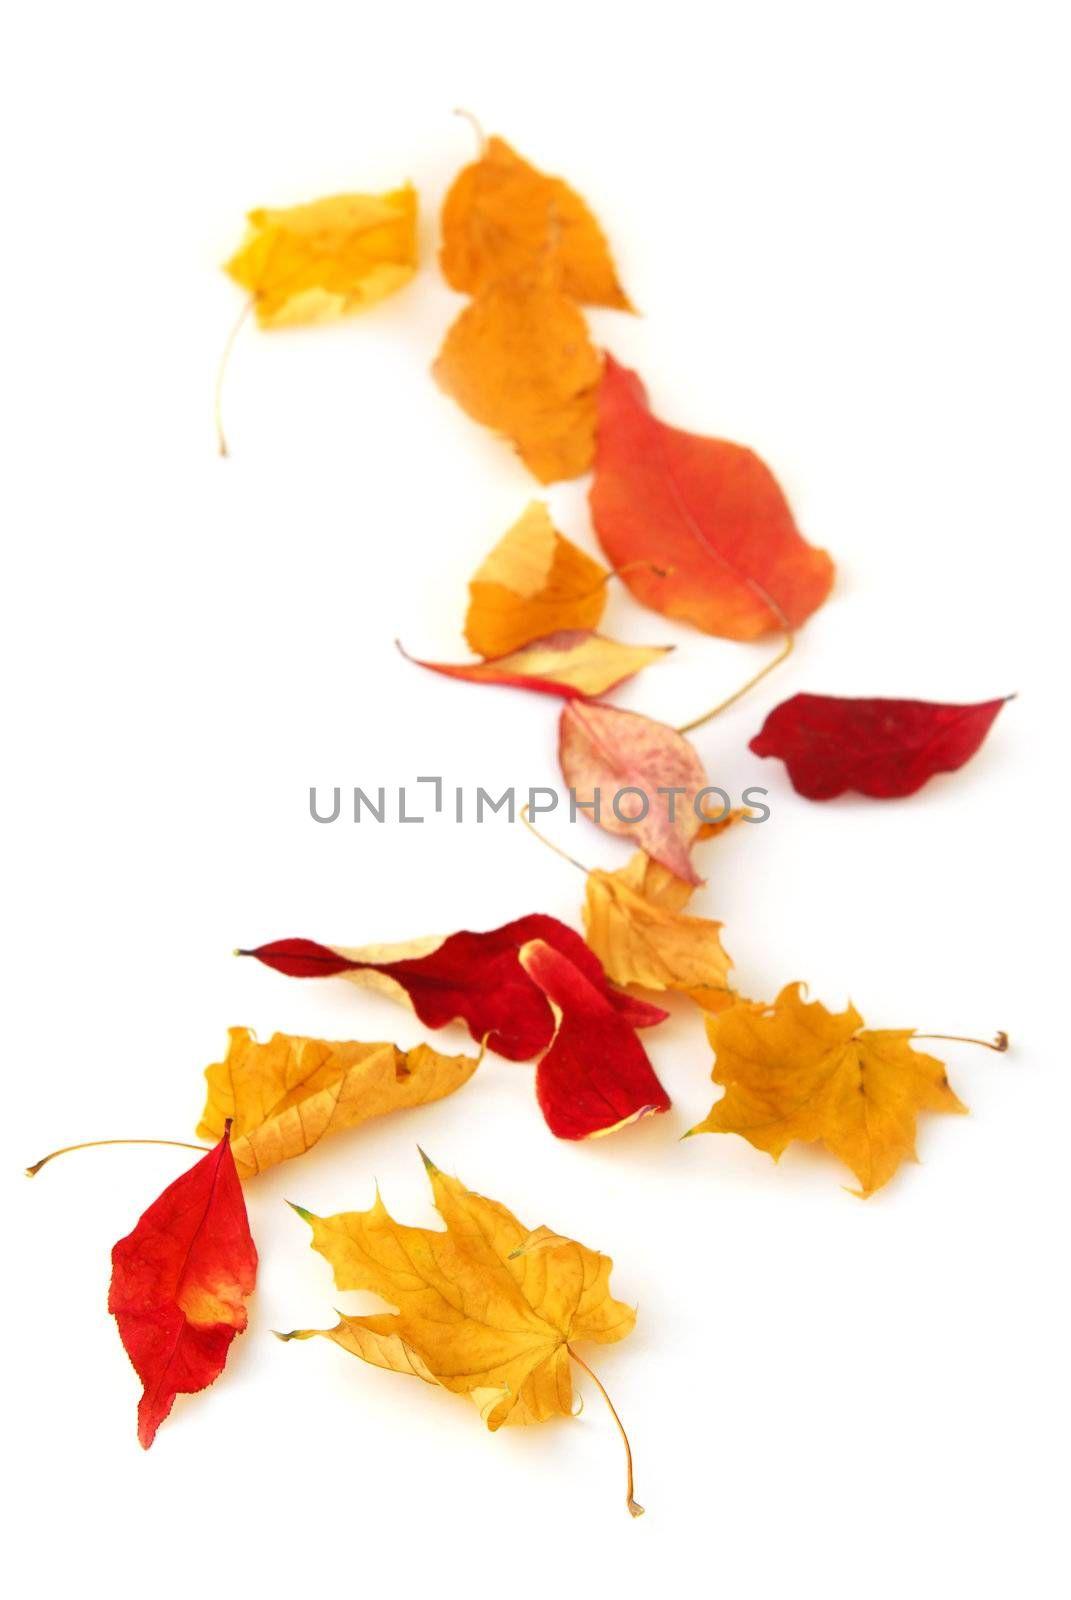 Dry colorful autumn leaves on white background